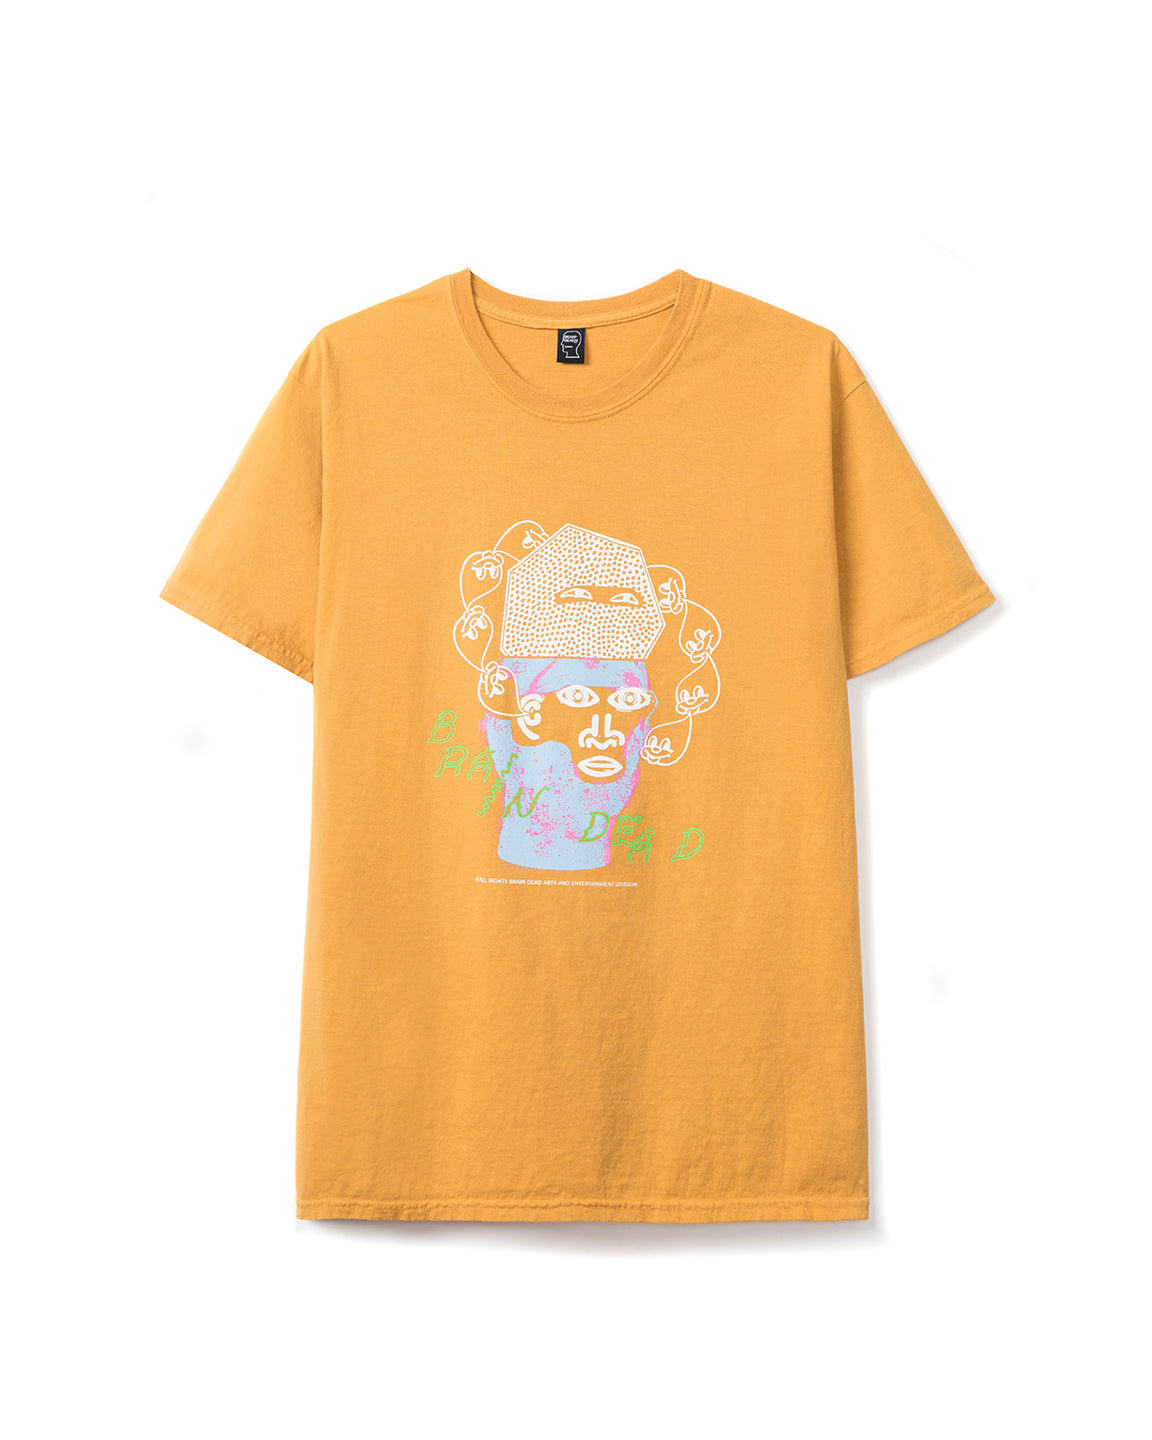 Cure T-shirt - Yellow - Brain Dead